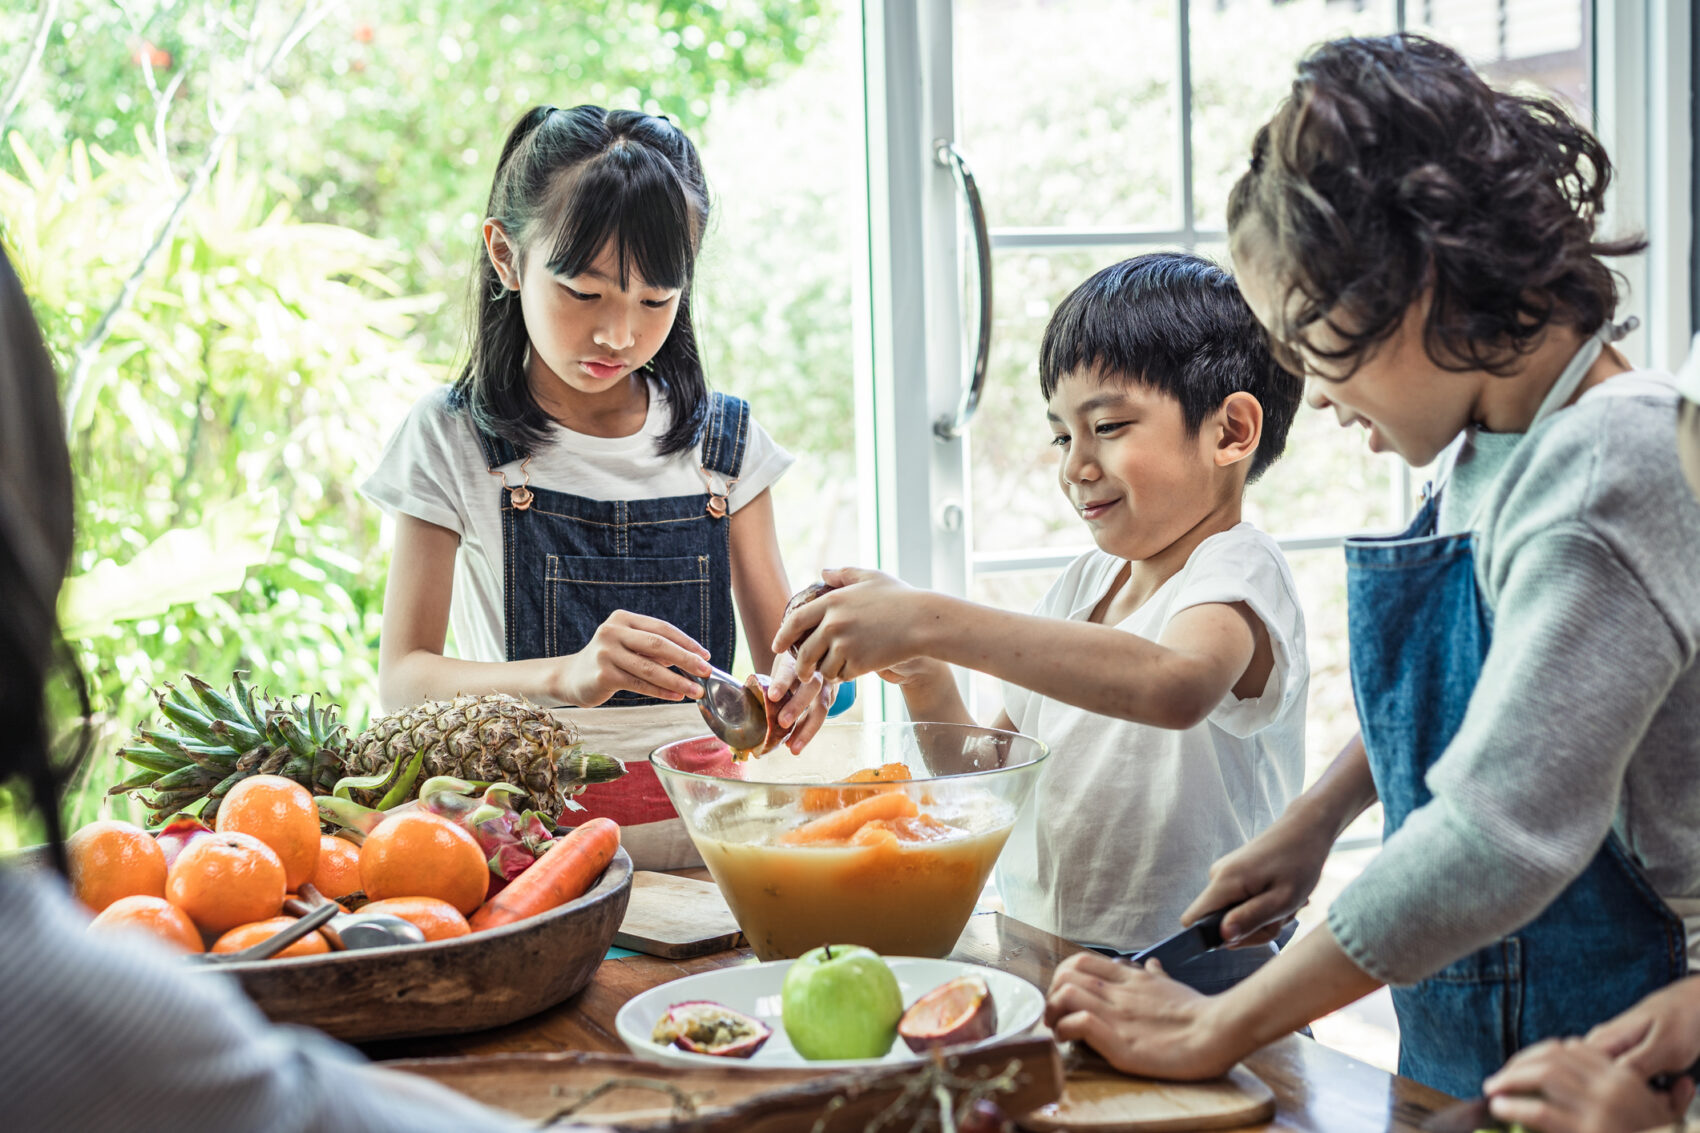 Asian students and friends learning cooking in the kitchen